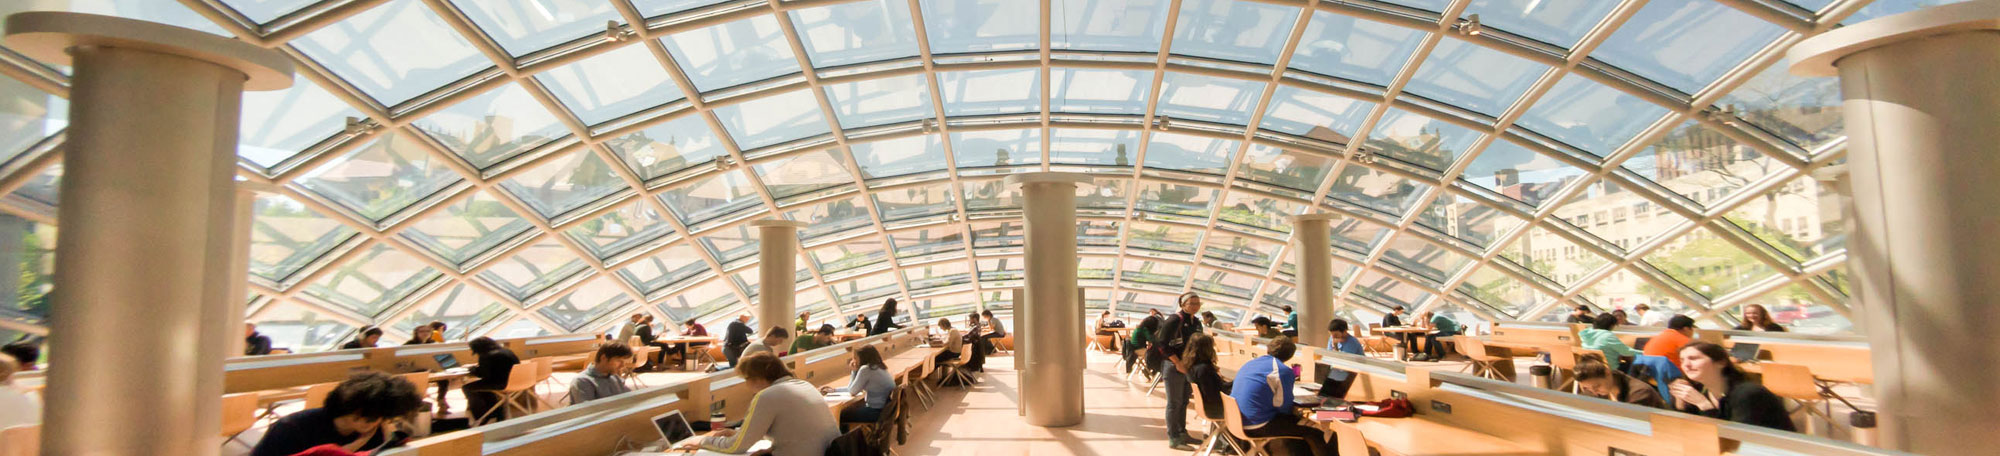 students studying in mansueto library on opening day